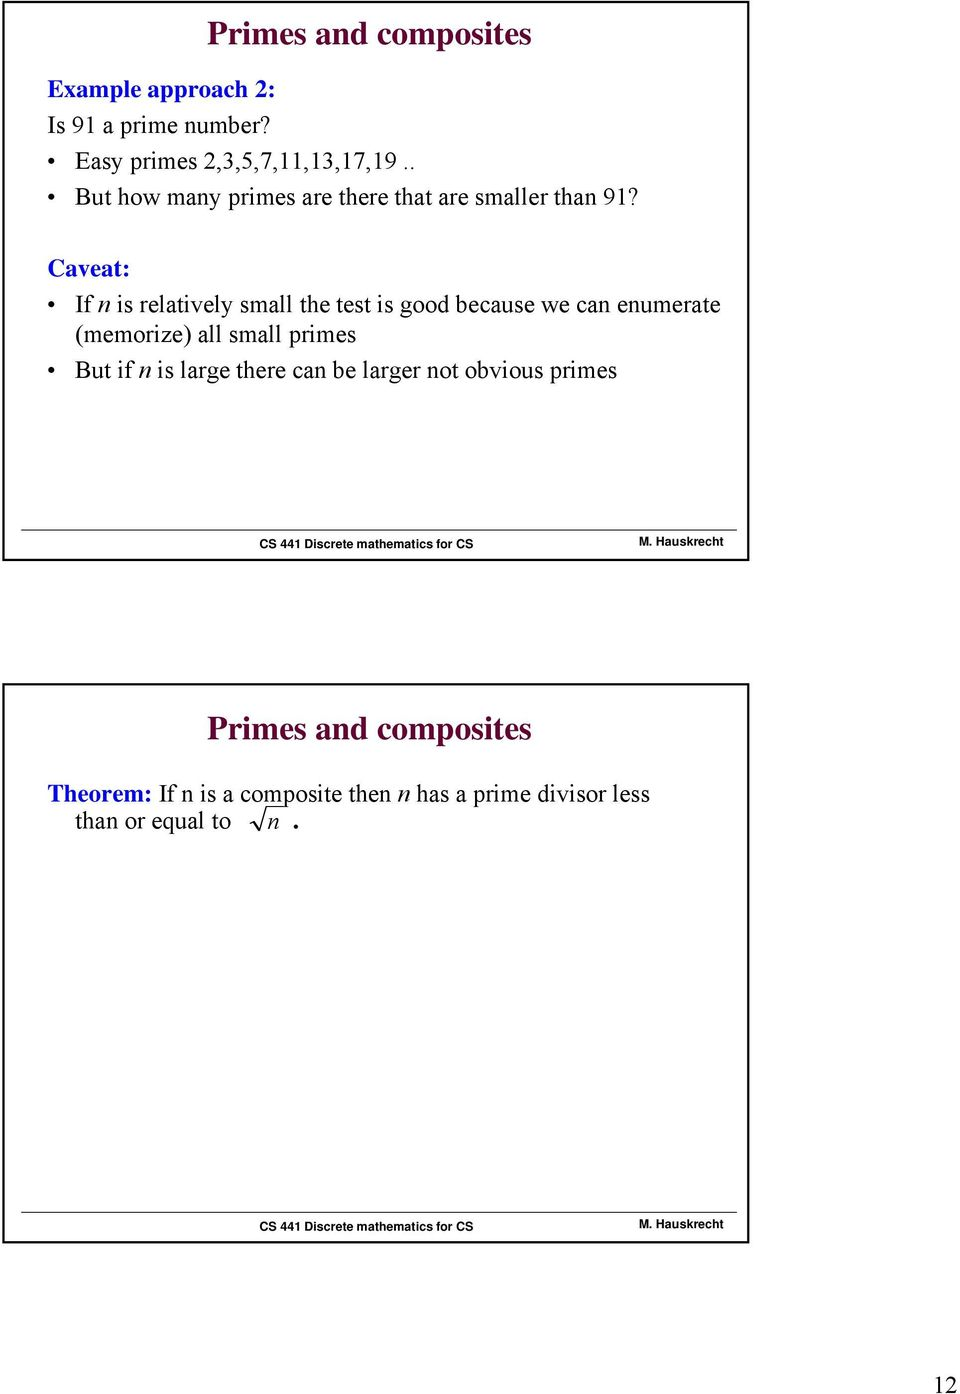 Caveat: If n is relatively small the test is good because we can enumerate (memorize) all small primes